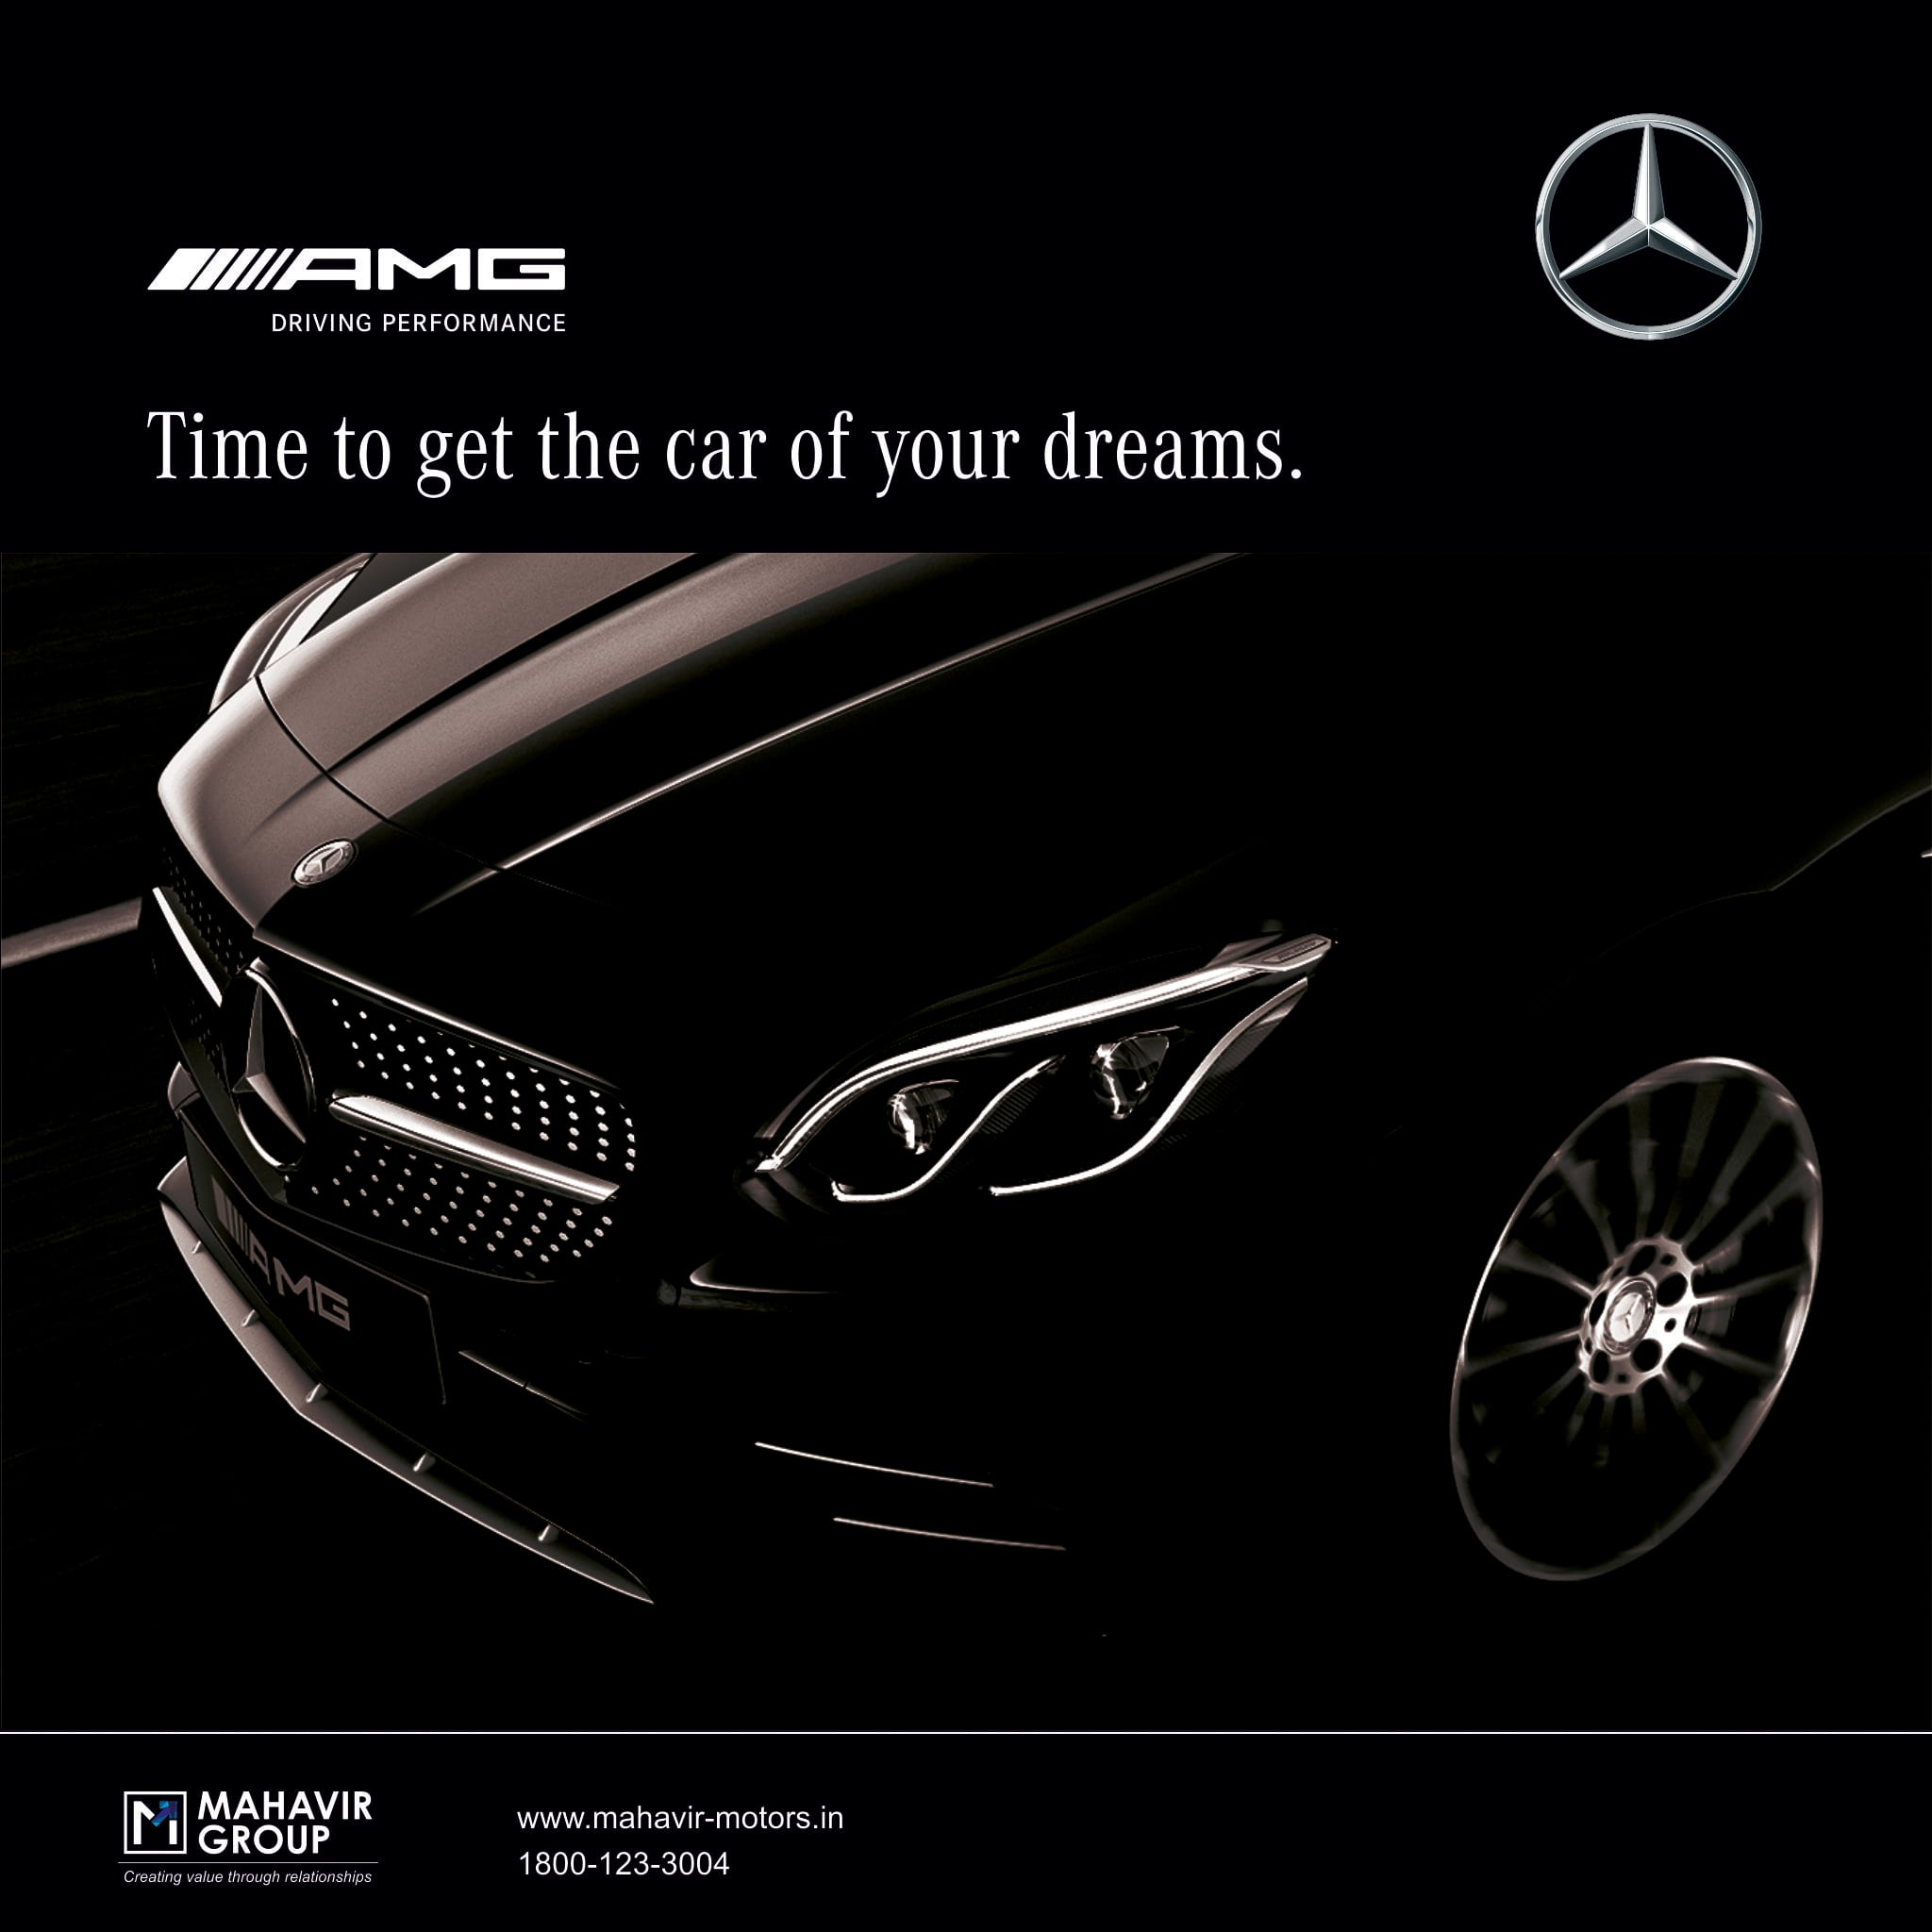 lymb1z93tgy-mercedes,-print-ad,-what's-in-a-name-creatives-(1)